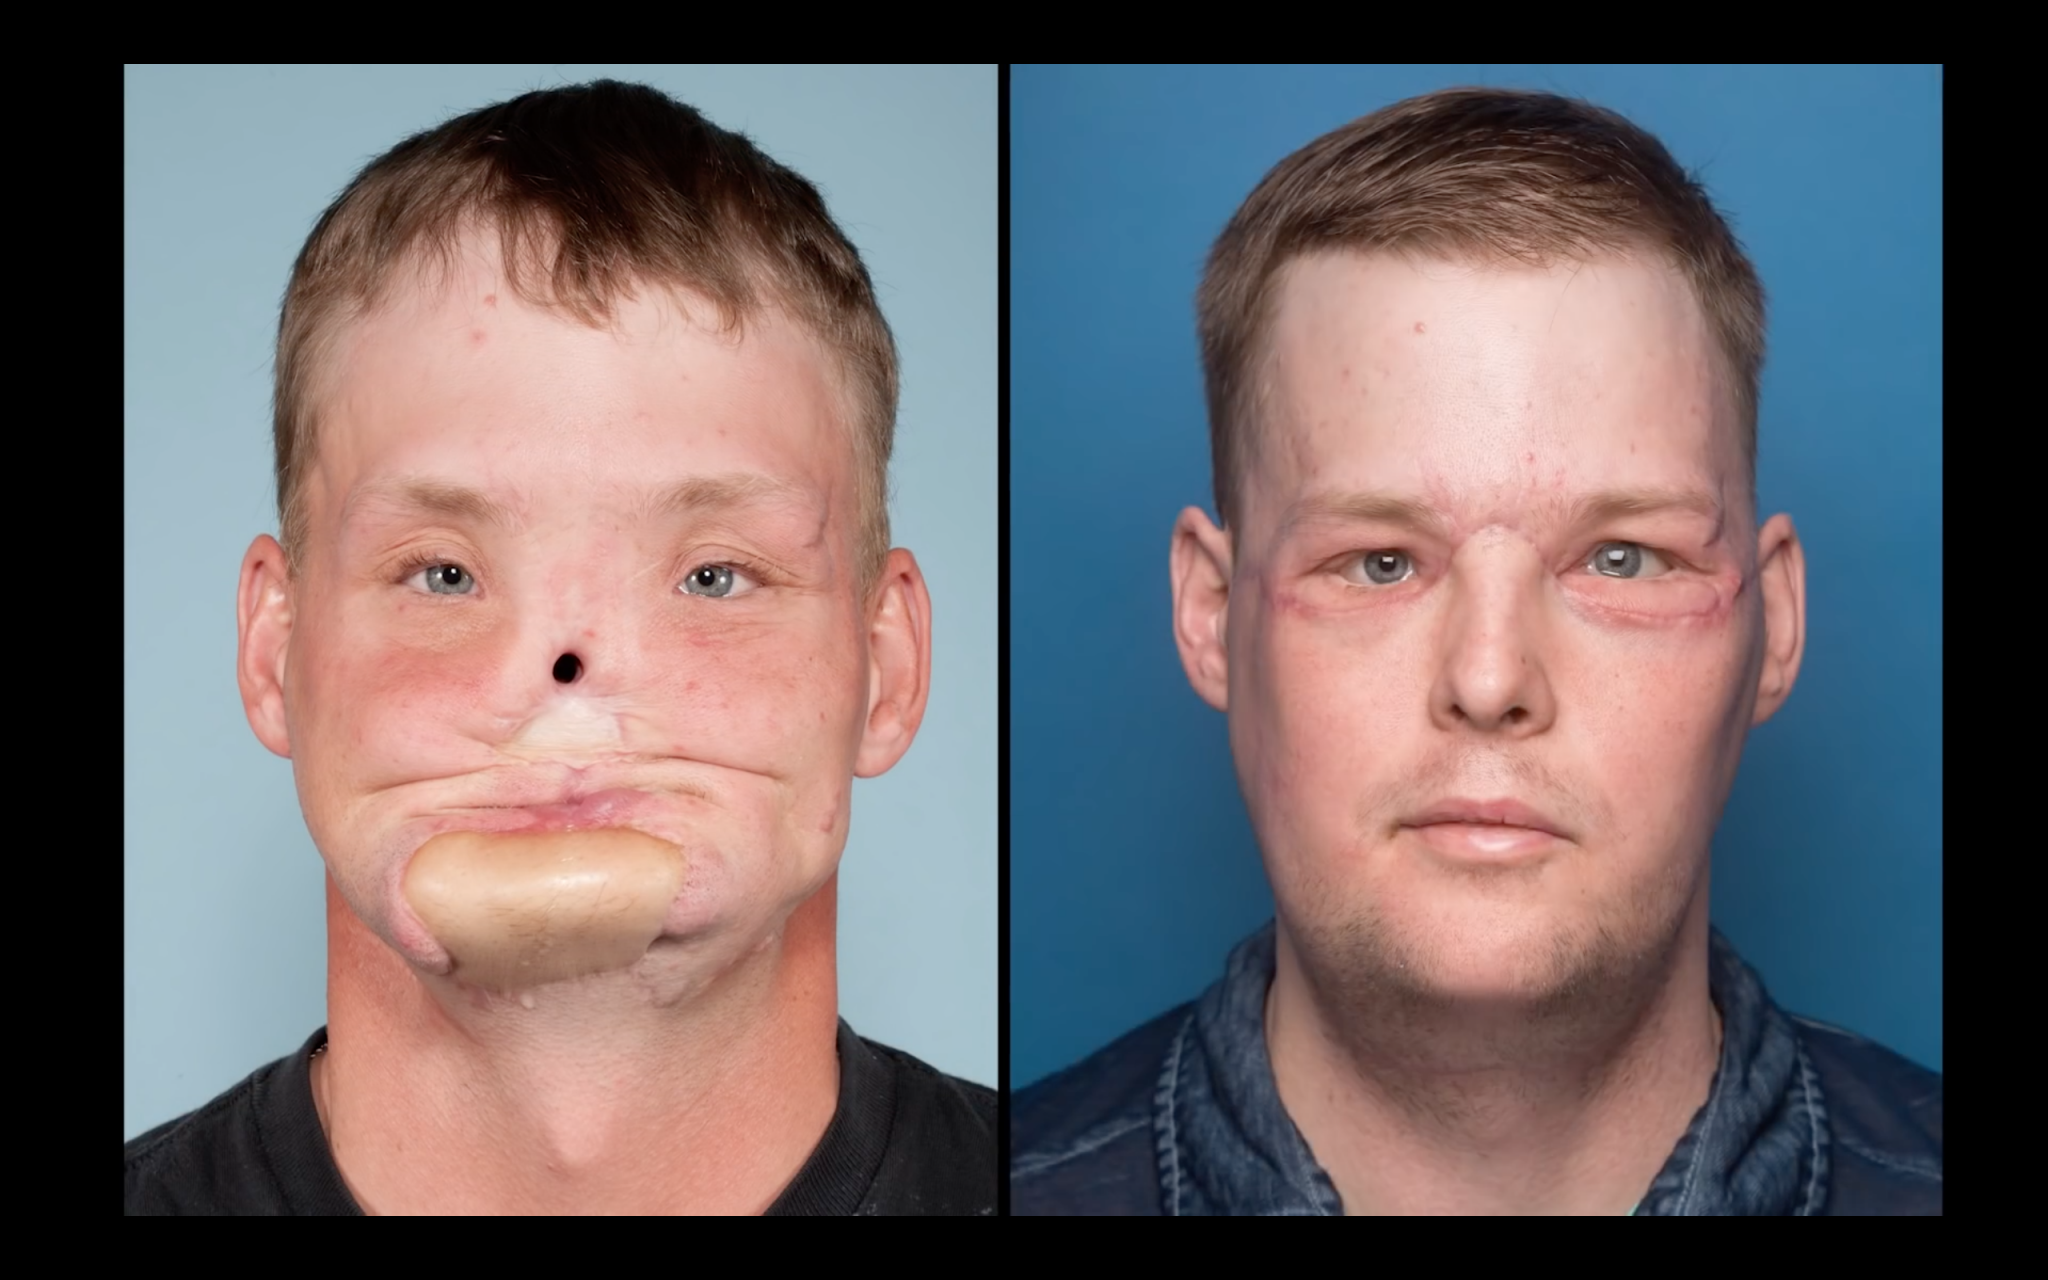 Before and after photos of Andy Sandness' facial transplantation. Photos via the Mayo Clinic